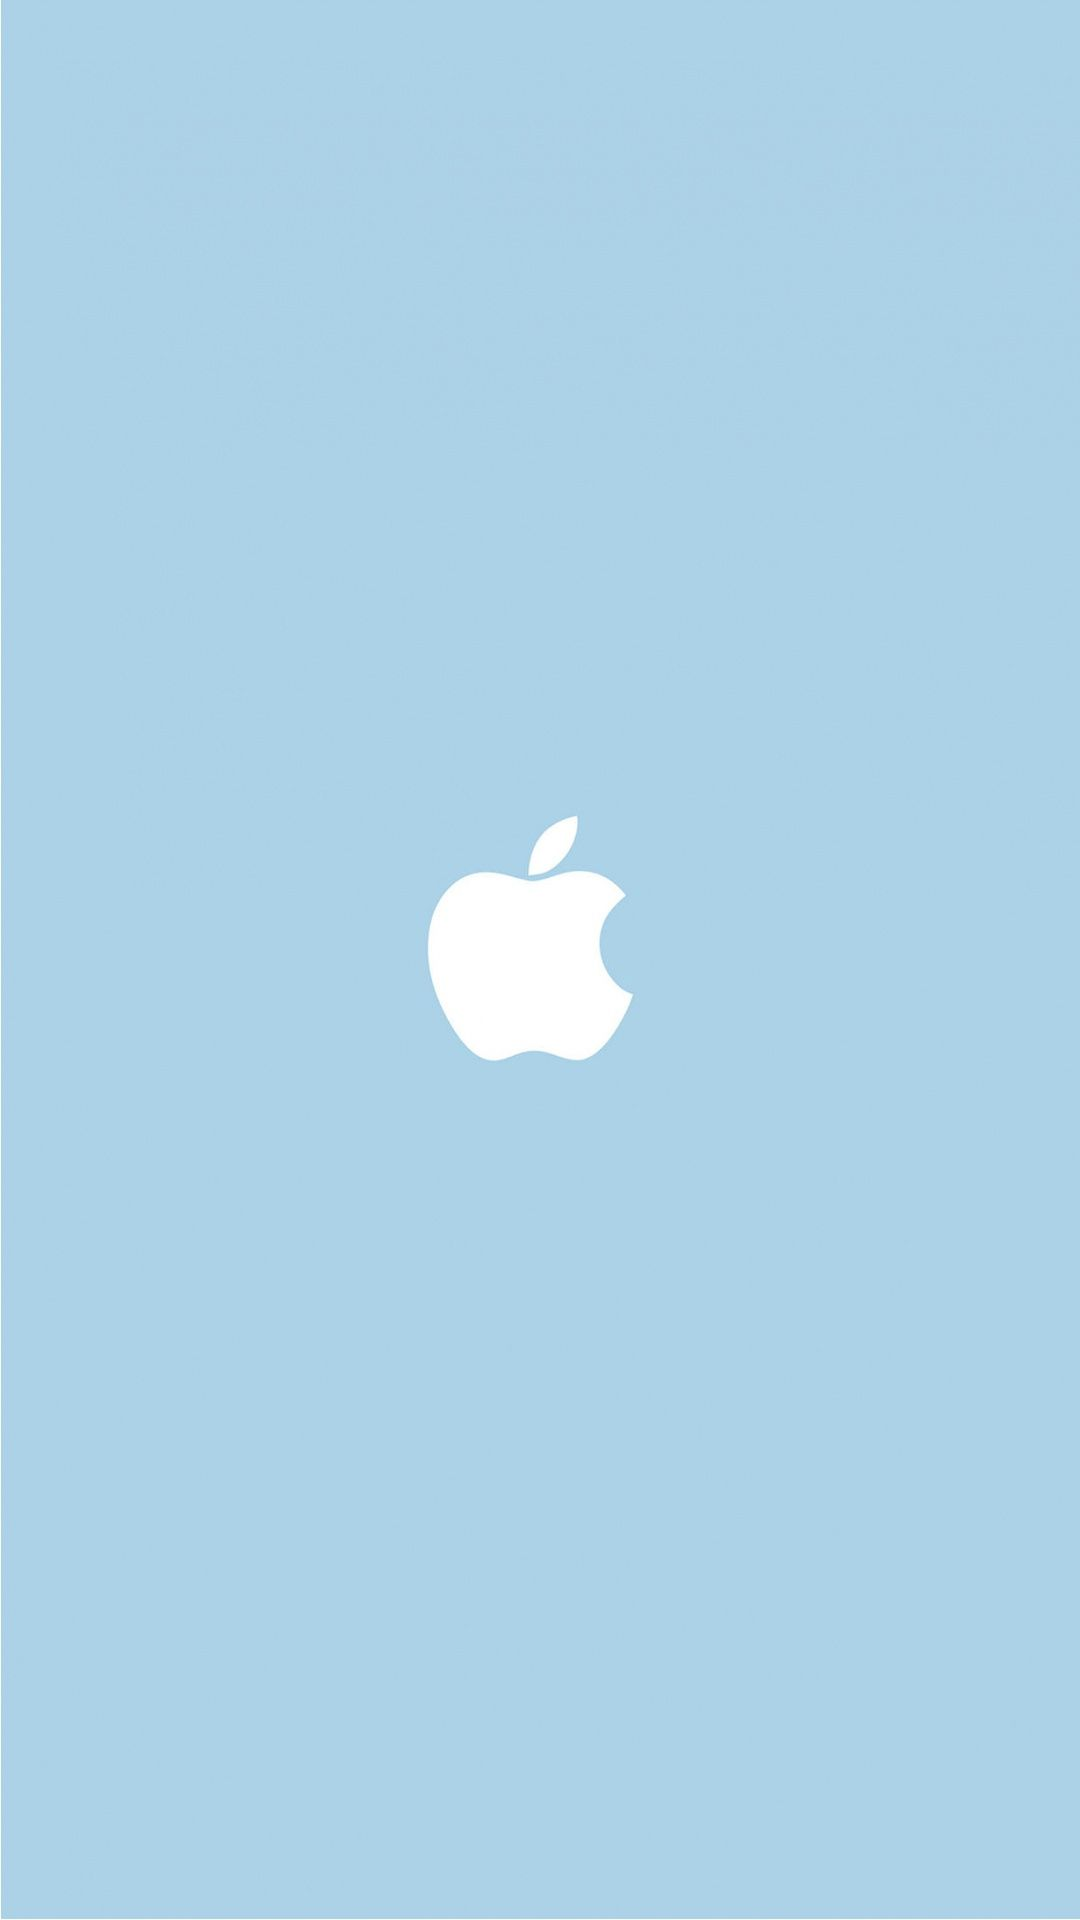 Wallpaper iphone apple logo - Best Of Macintosh Apple Logo Wallpapers Tap Image For More Mobile9